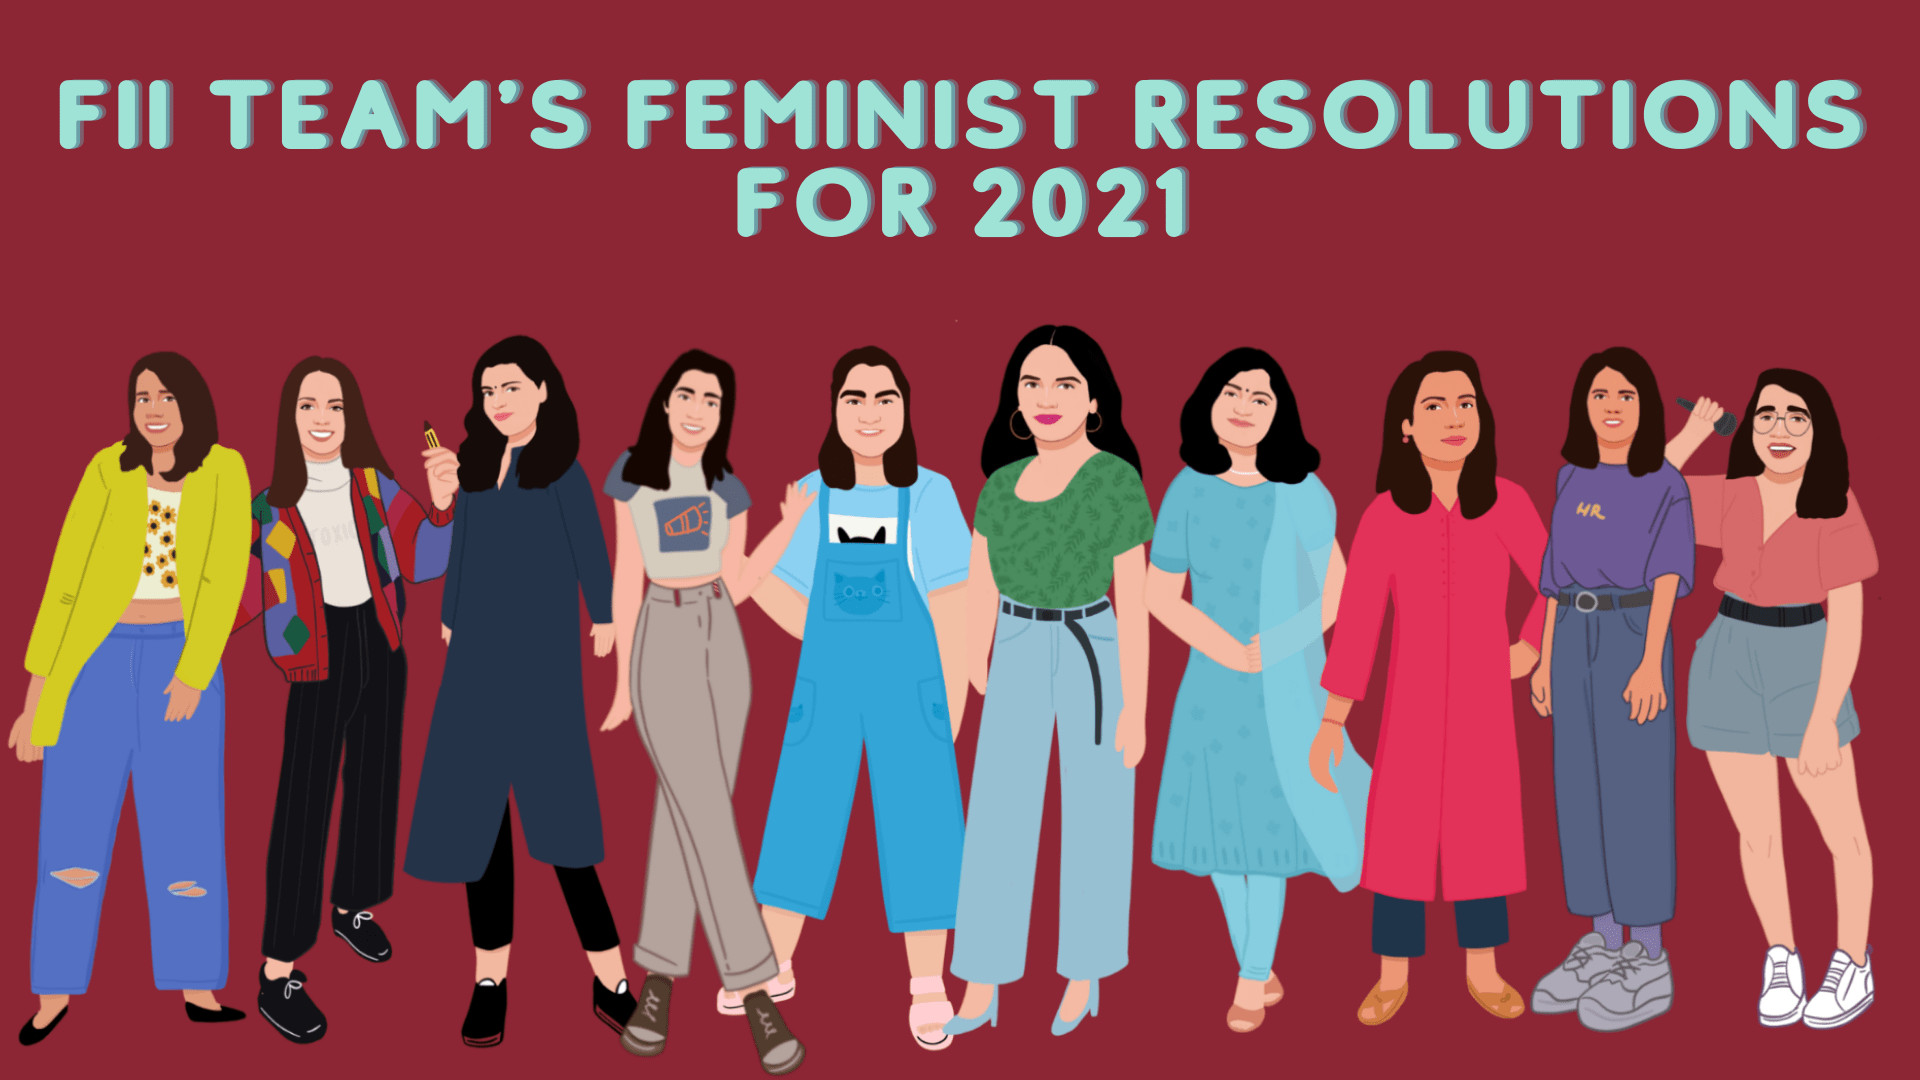 Looking At You, 2021: FII Team's Feminist Resolutions